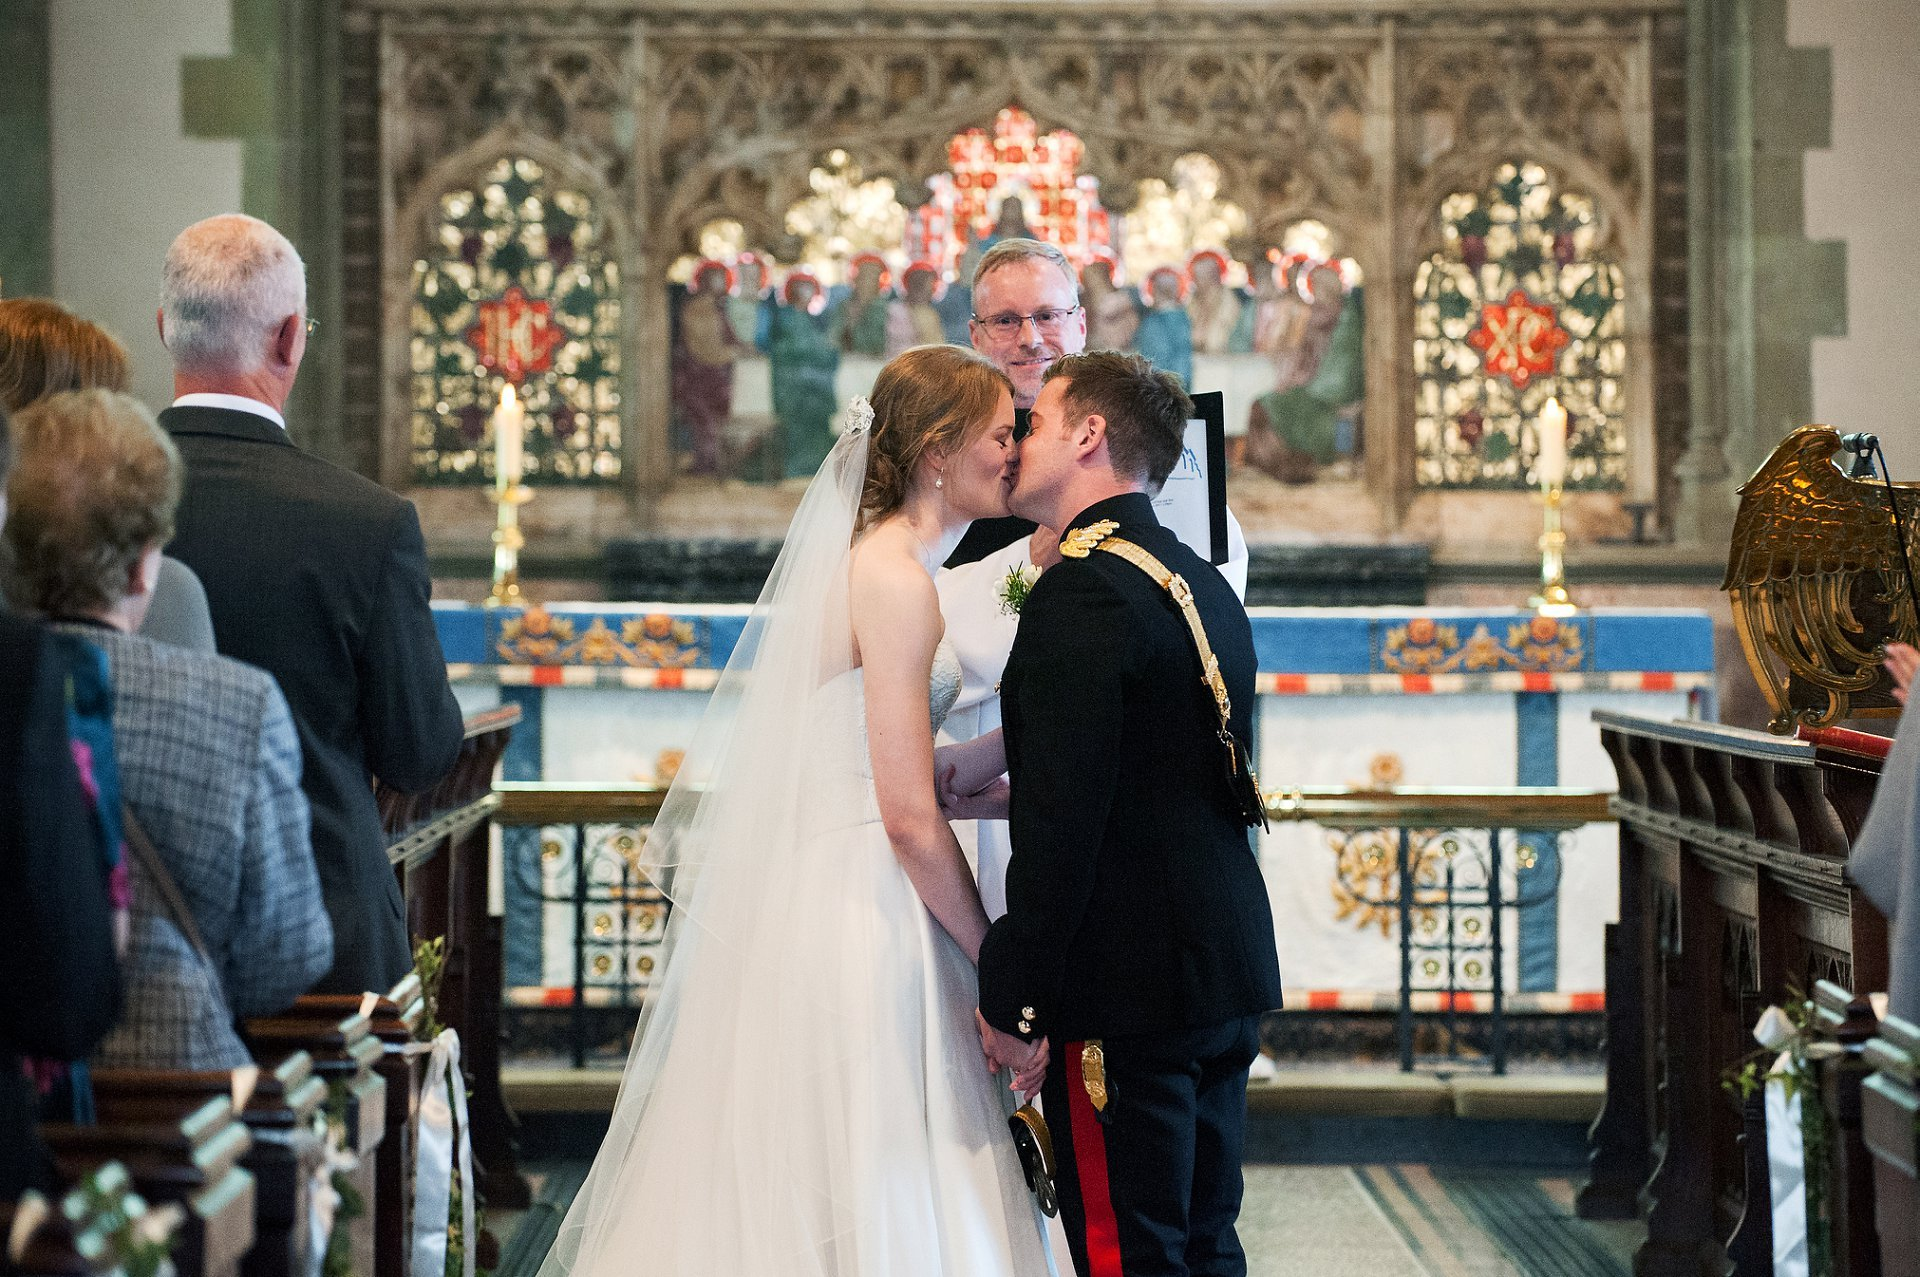 Bride and groom kiss to seal their marriage at St Mary the Vigin Westerham